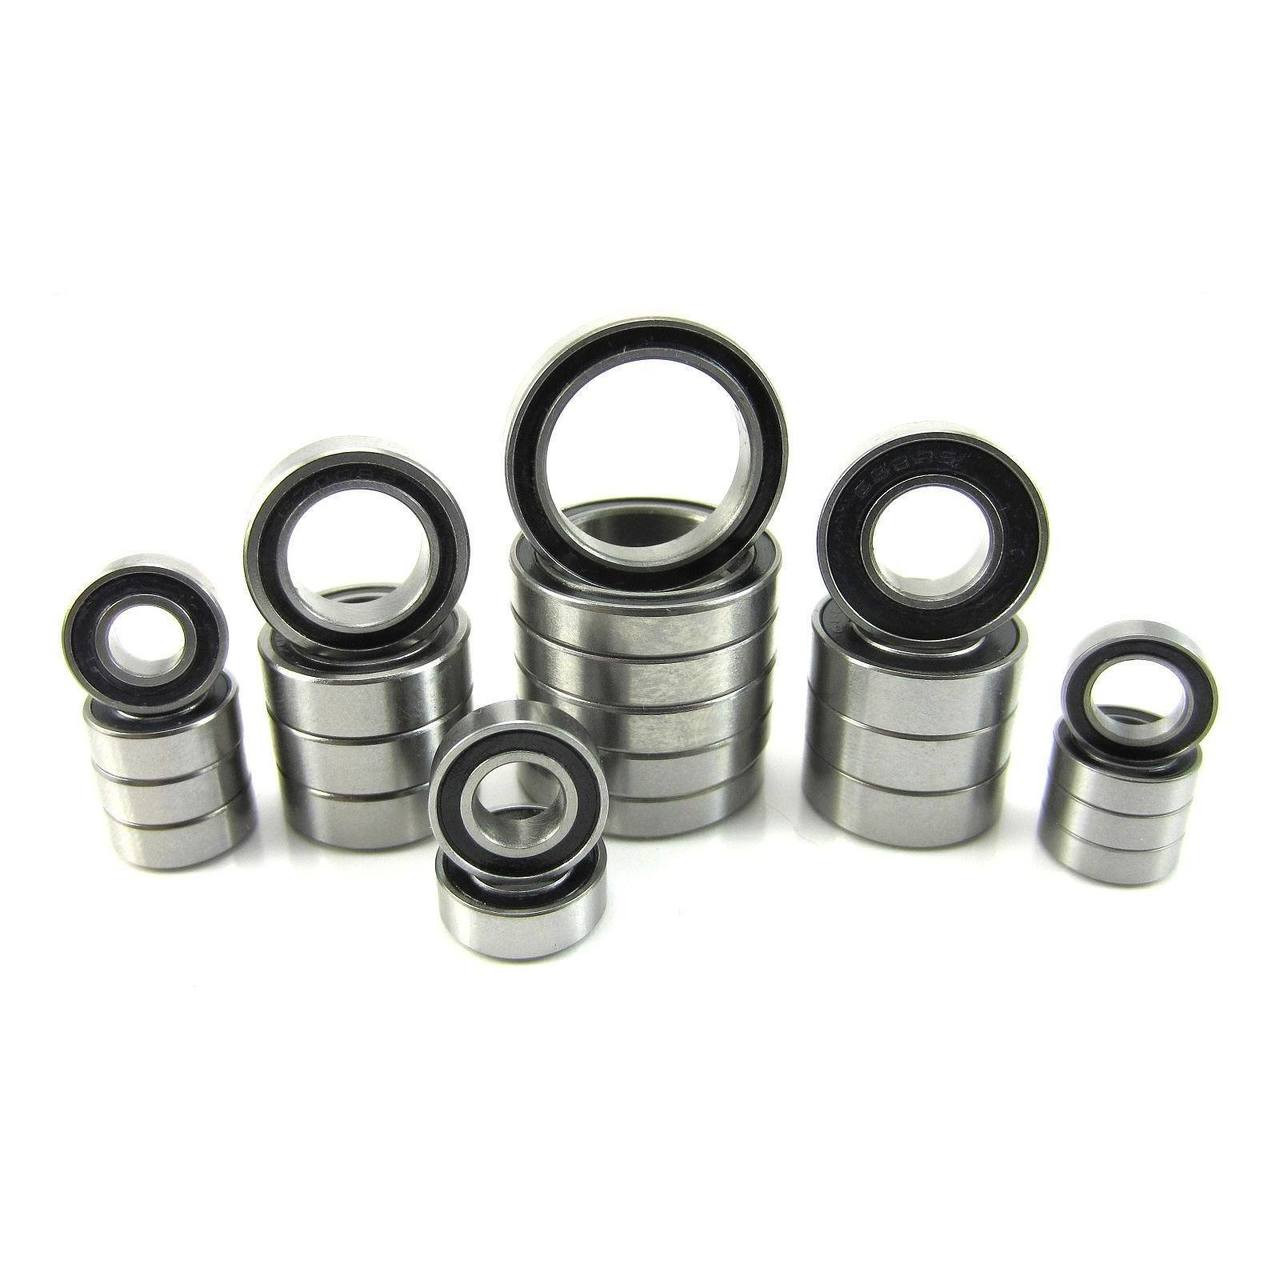 TRB RC Precision Ball Bearing Kit (24) Rubber Sealed Axial Yeti XL